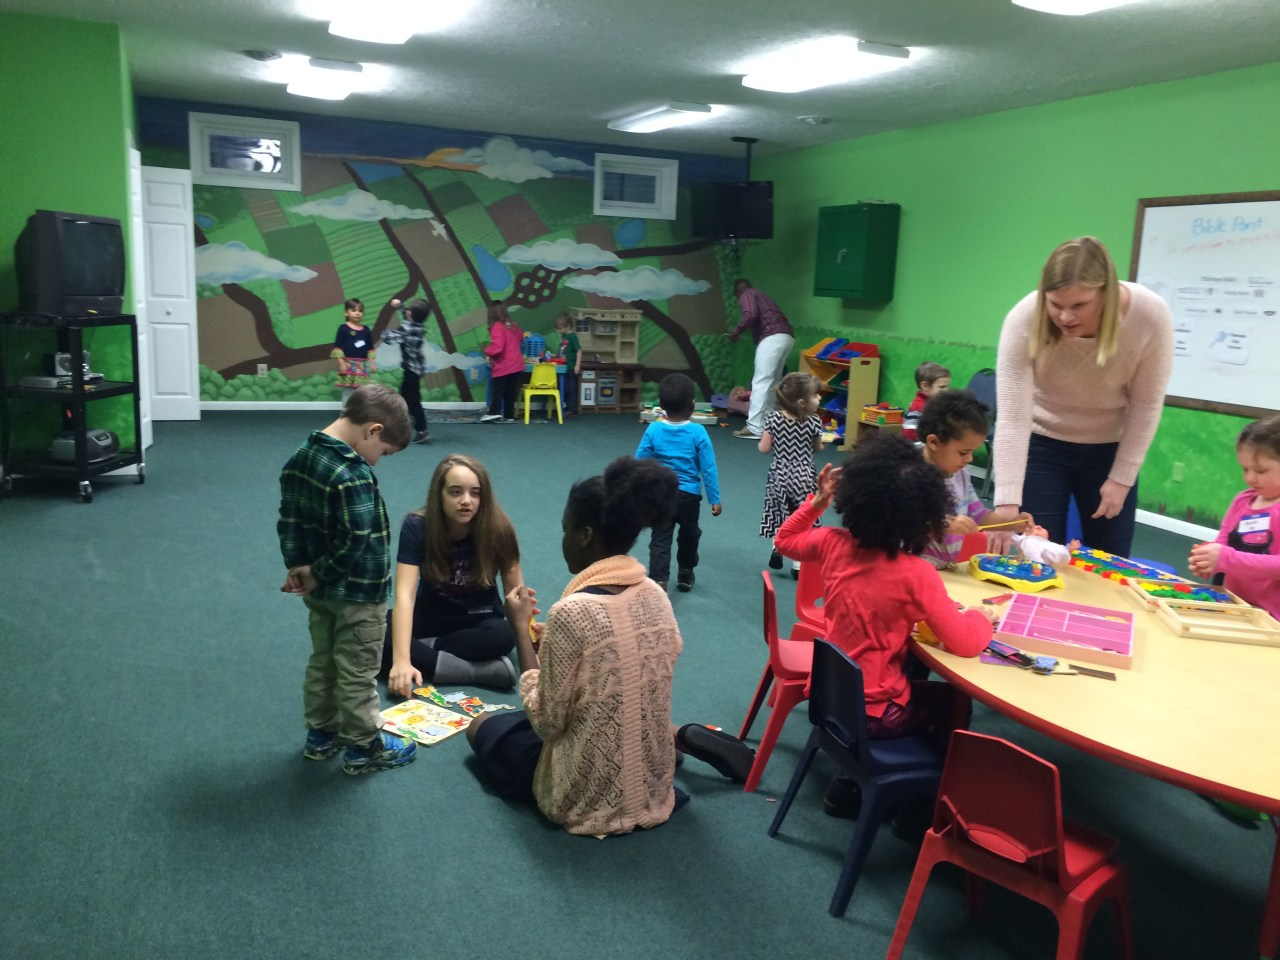 Praise Fellowship Church-Champions Kids Ministry - Russell, PA